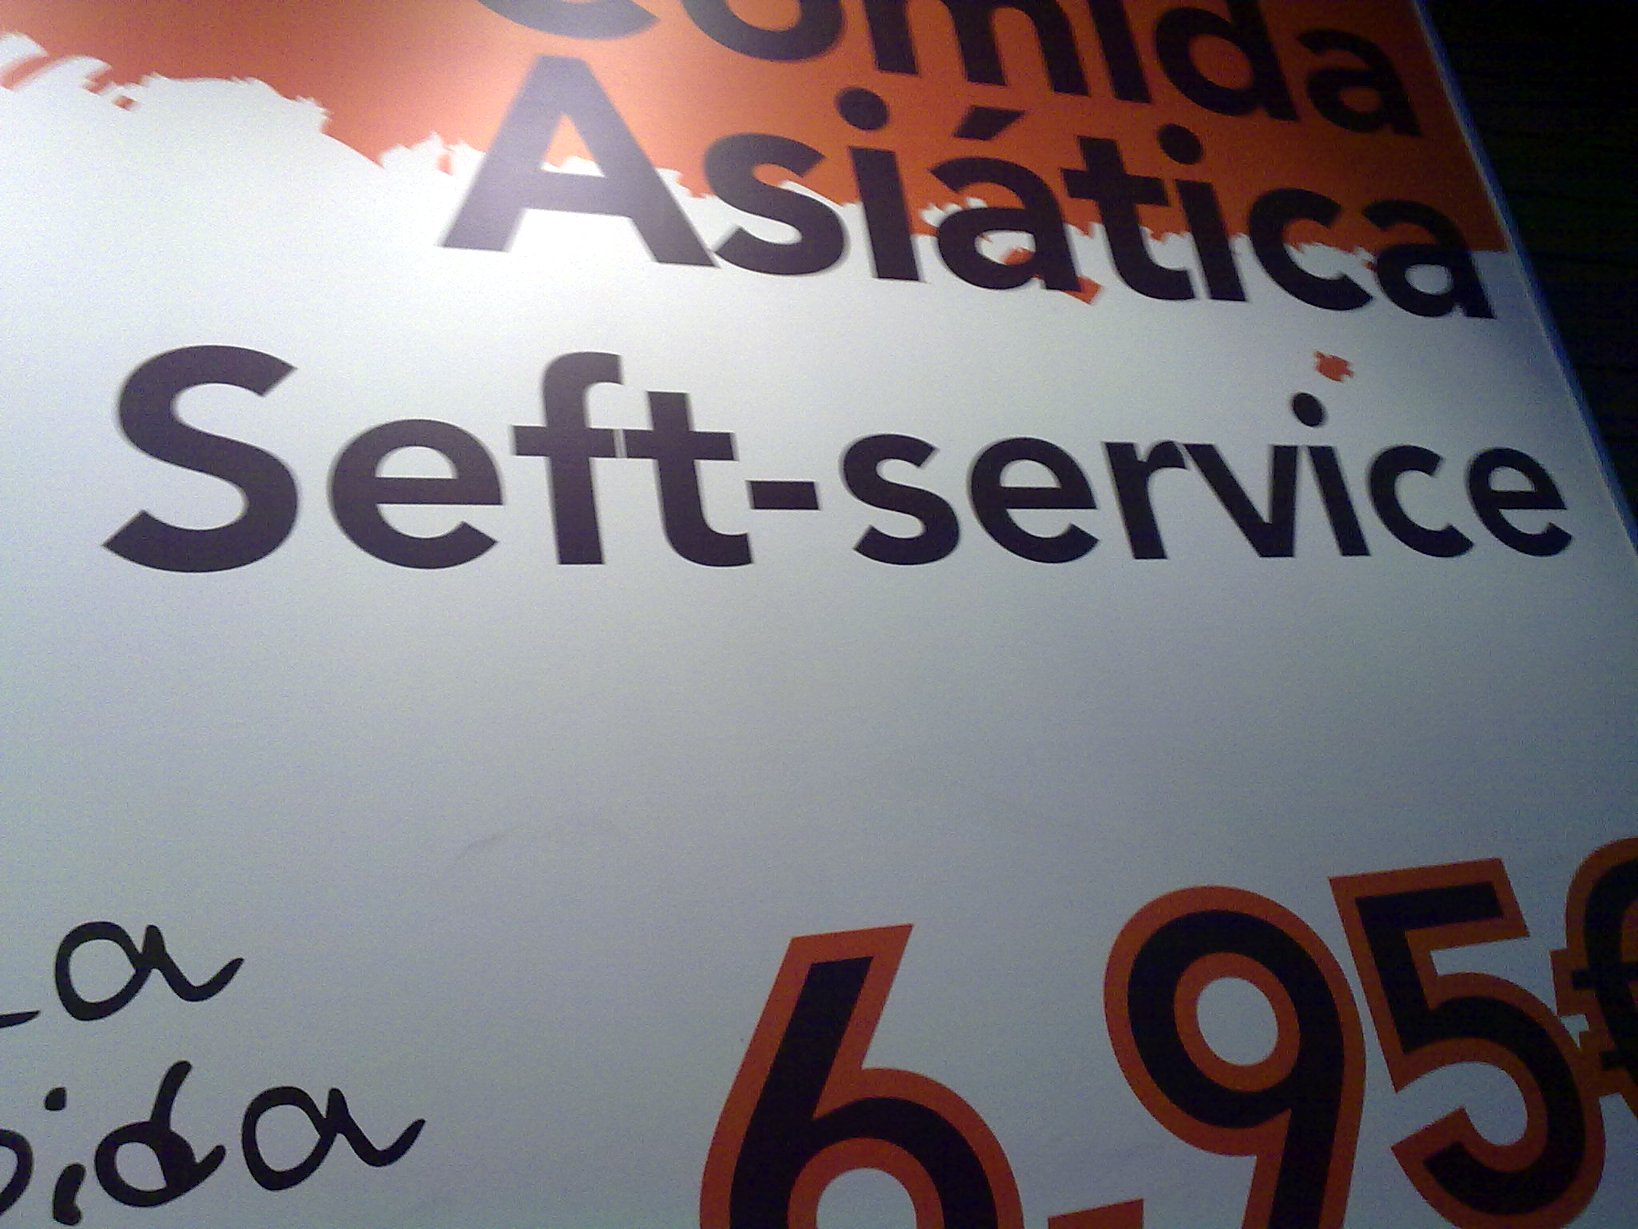 Seft-service